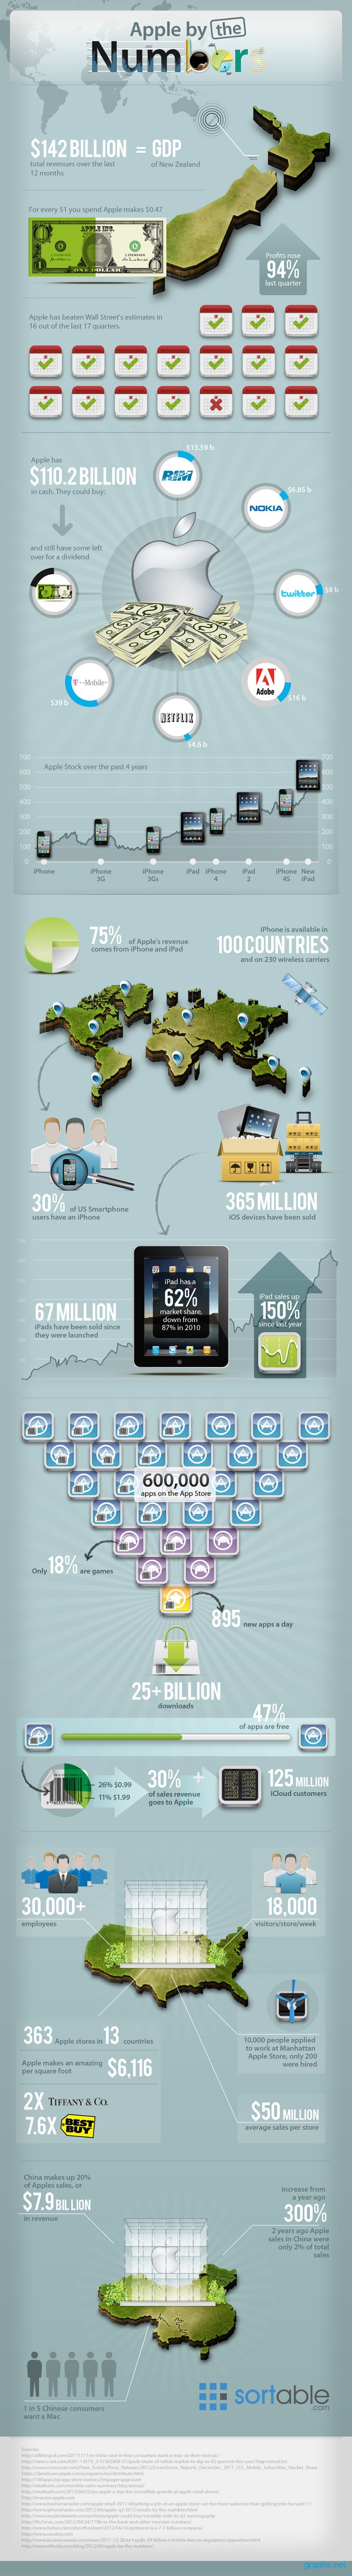 apple facts and figures